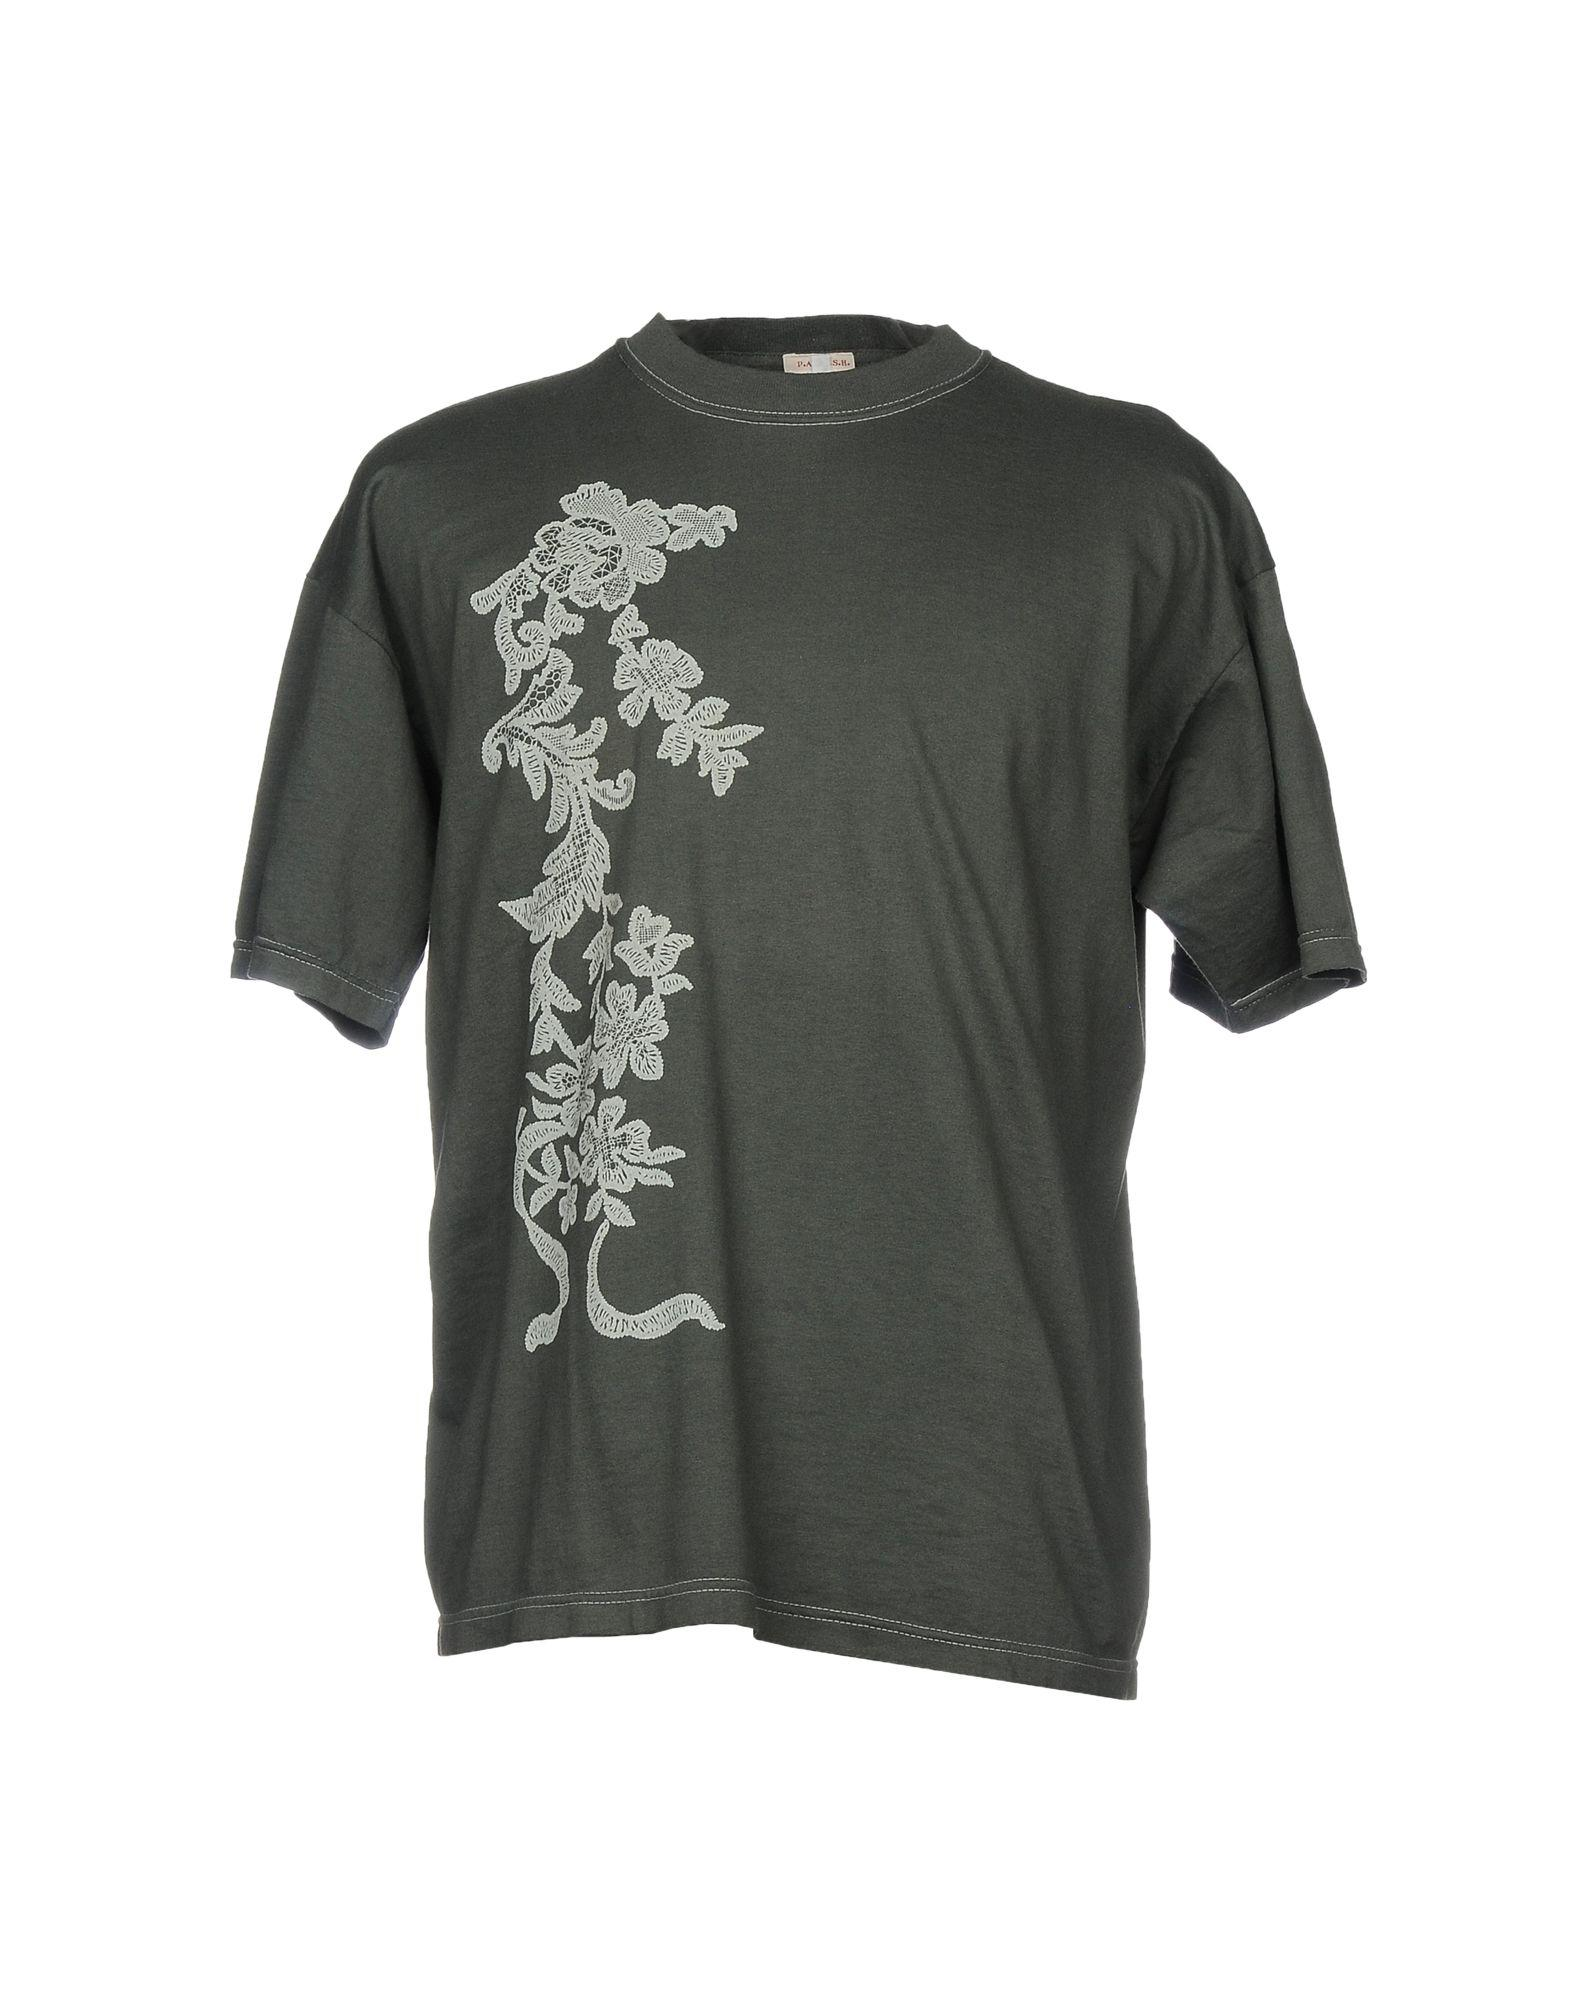 P.a.r.o.s.h. T-shirts In Grey